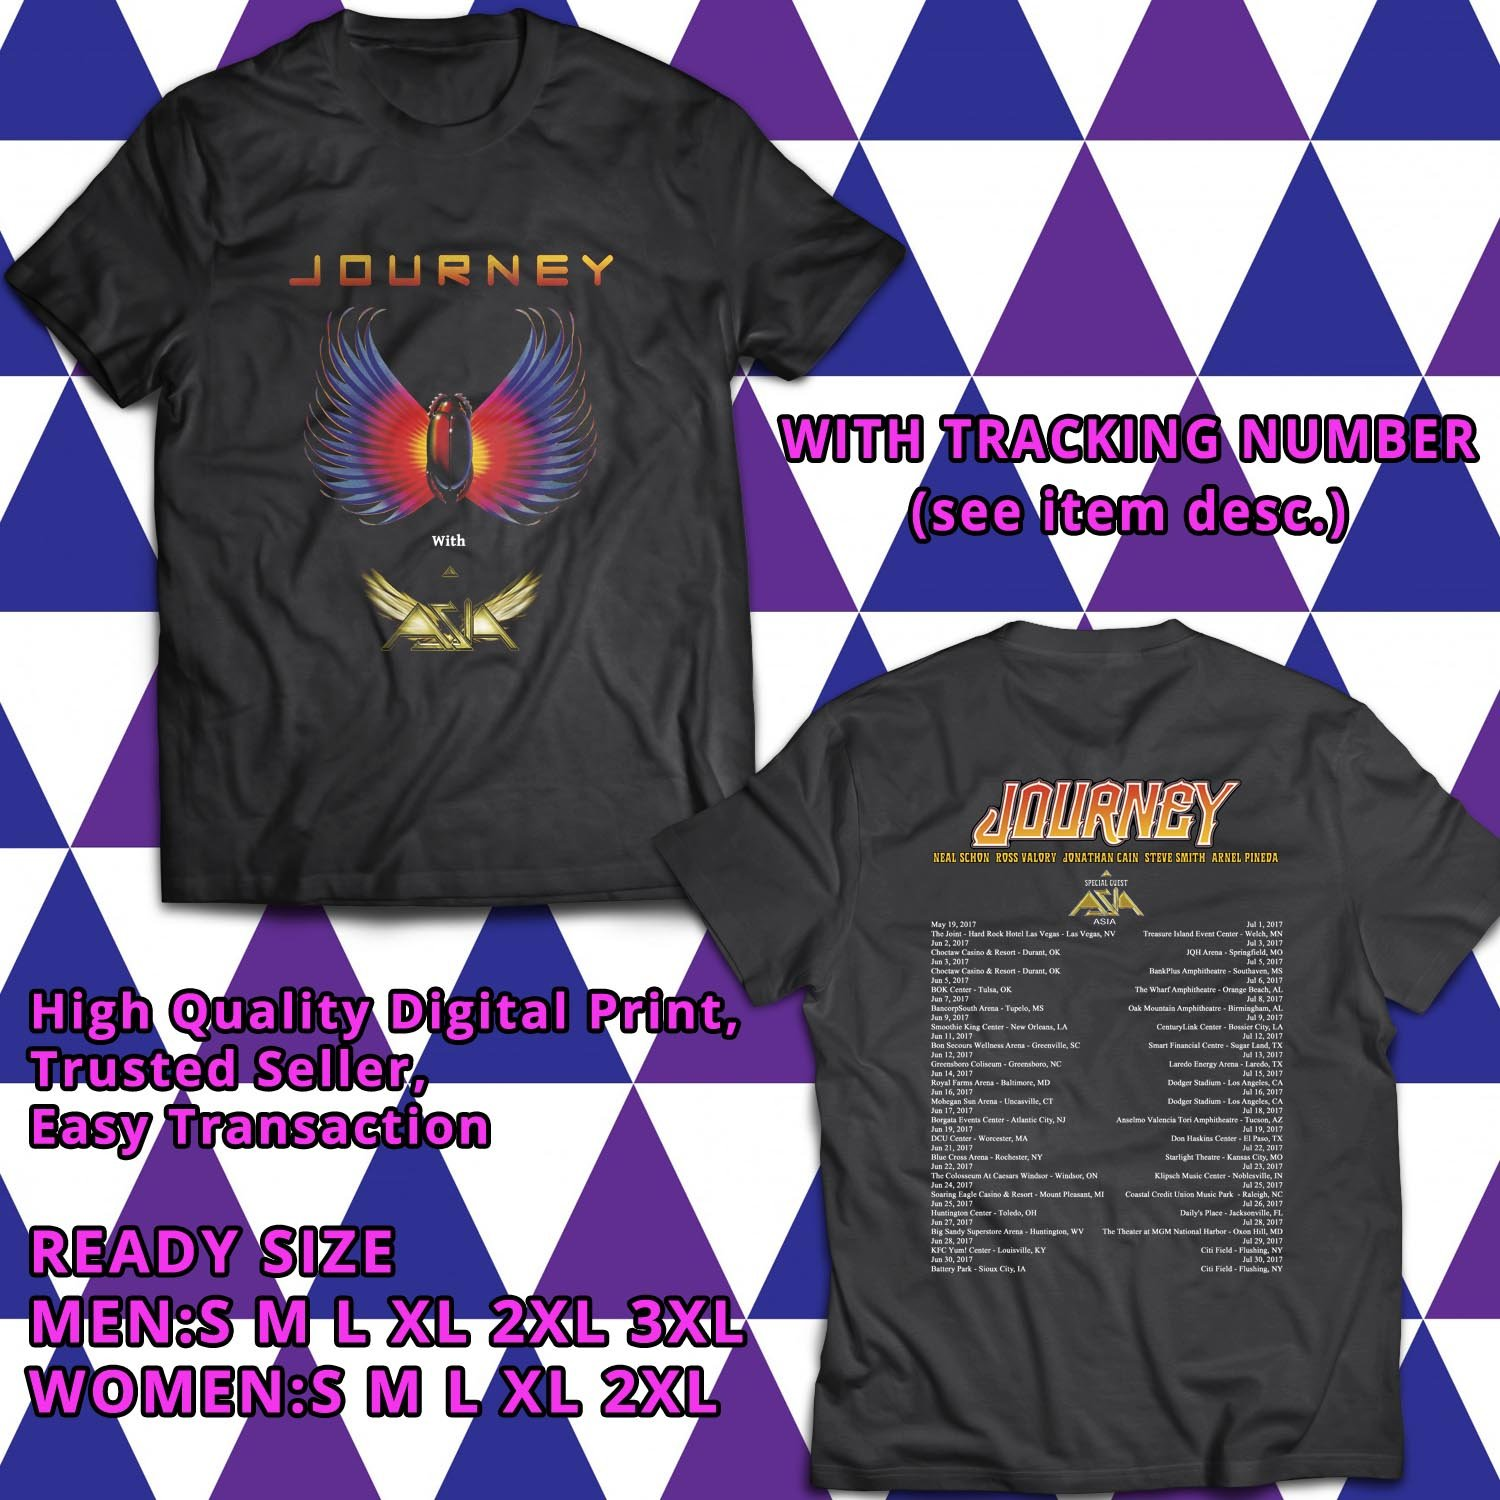 HITS JOURNEY AND ASIA NORTH AMERICA 2017 BLACK TEE'S 2SIDE MAN WOMEN ASTR 443